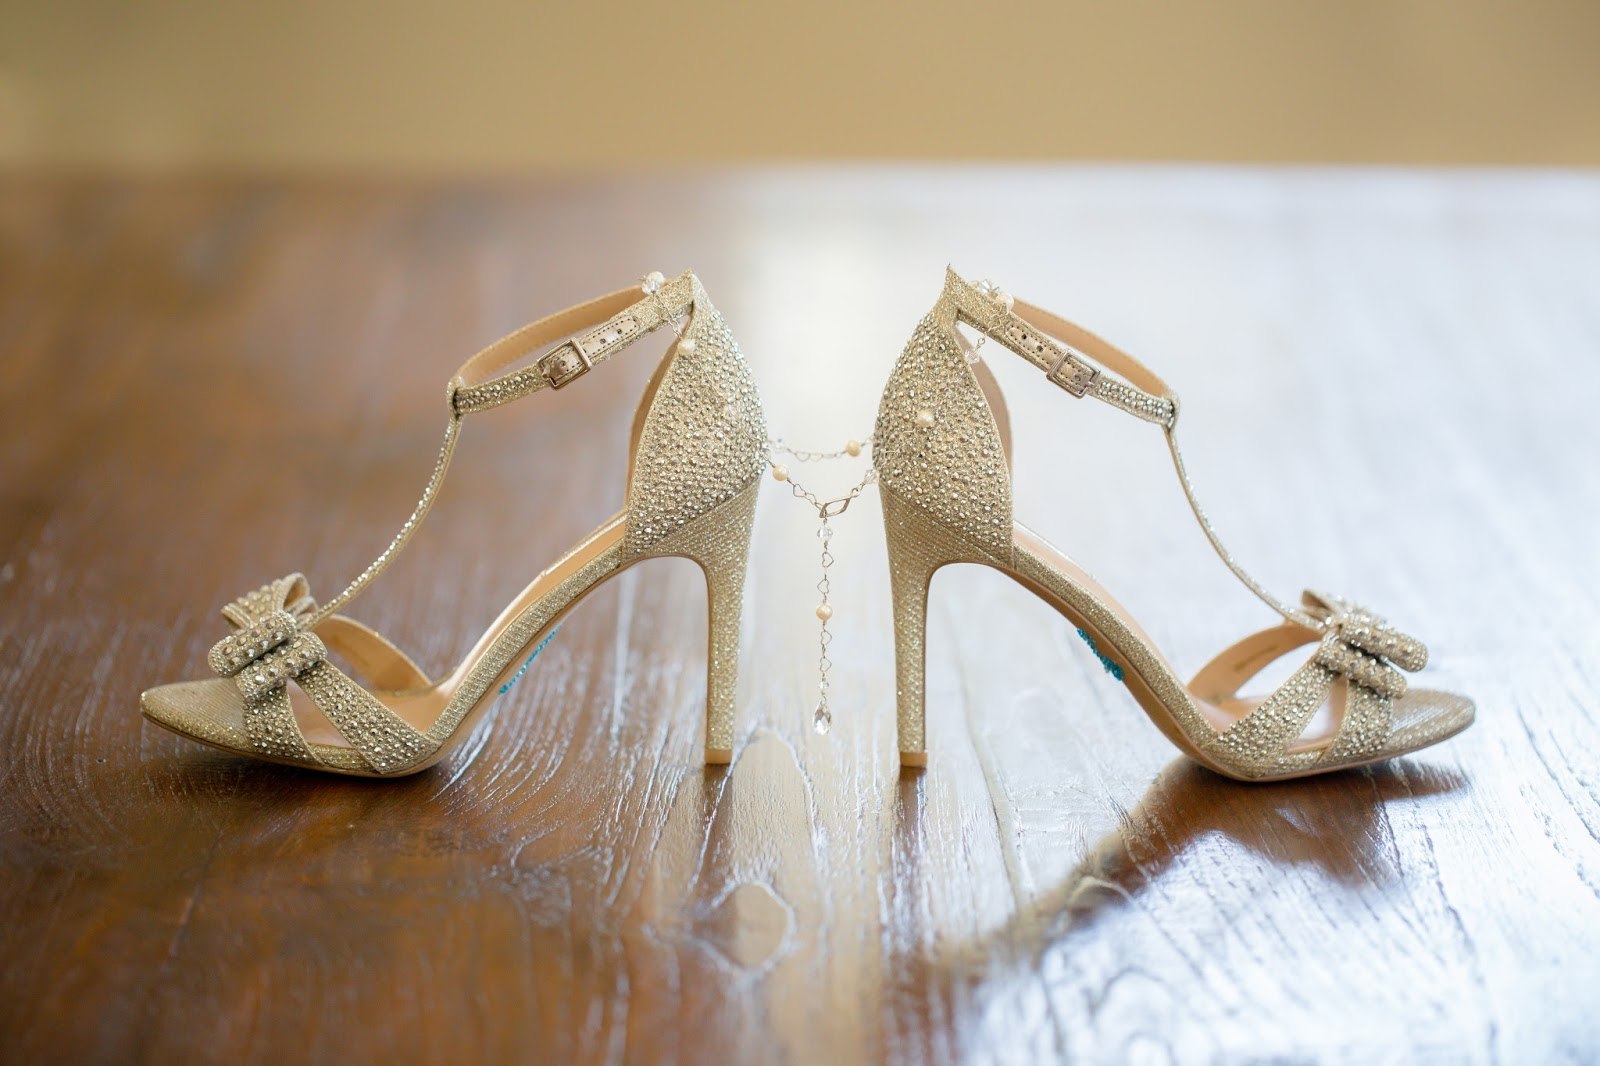 Brides Shoes with Jewelry